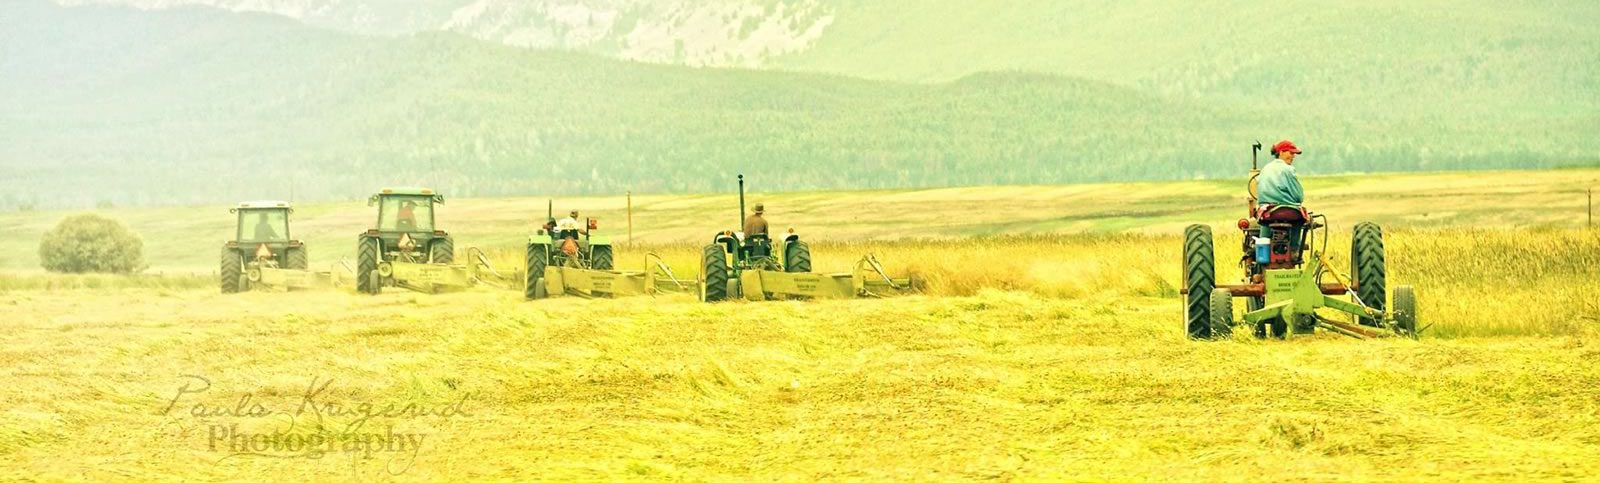 Photo of row of tractors cutting hay.